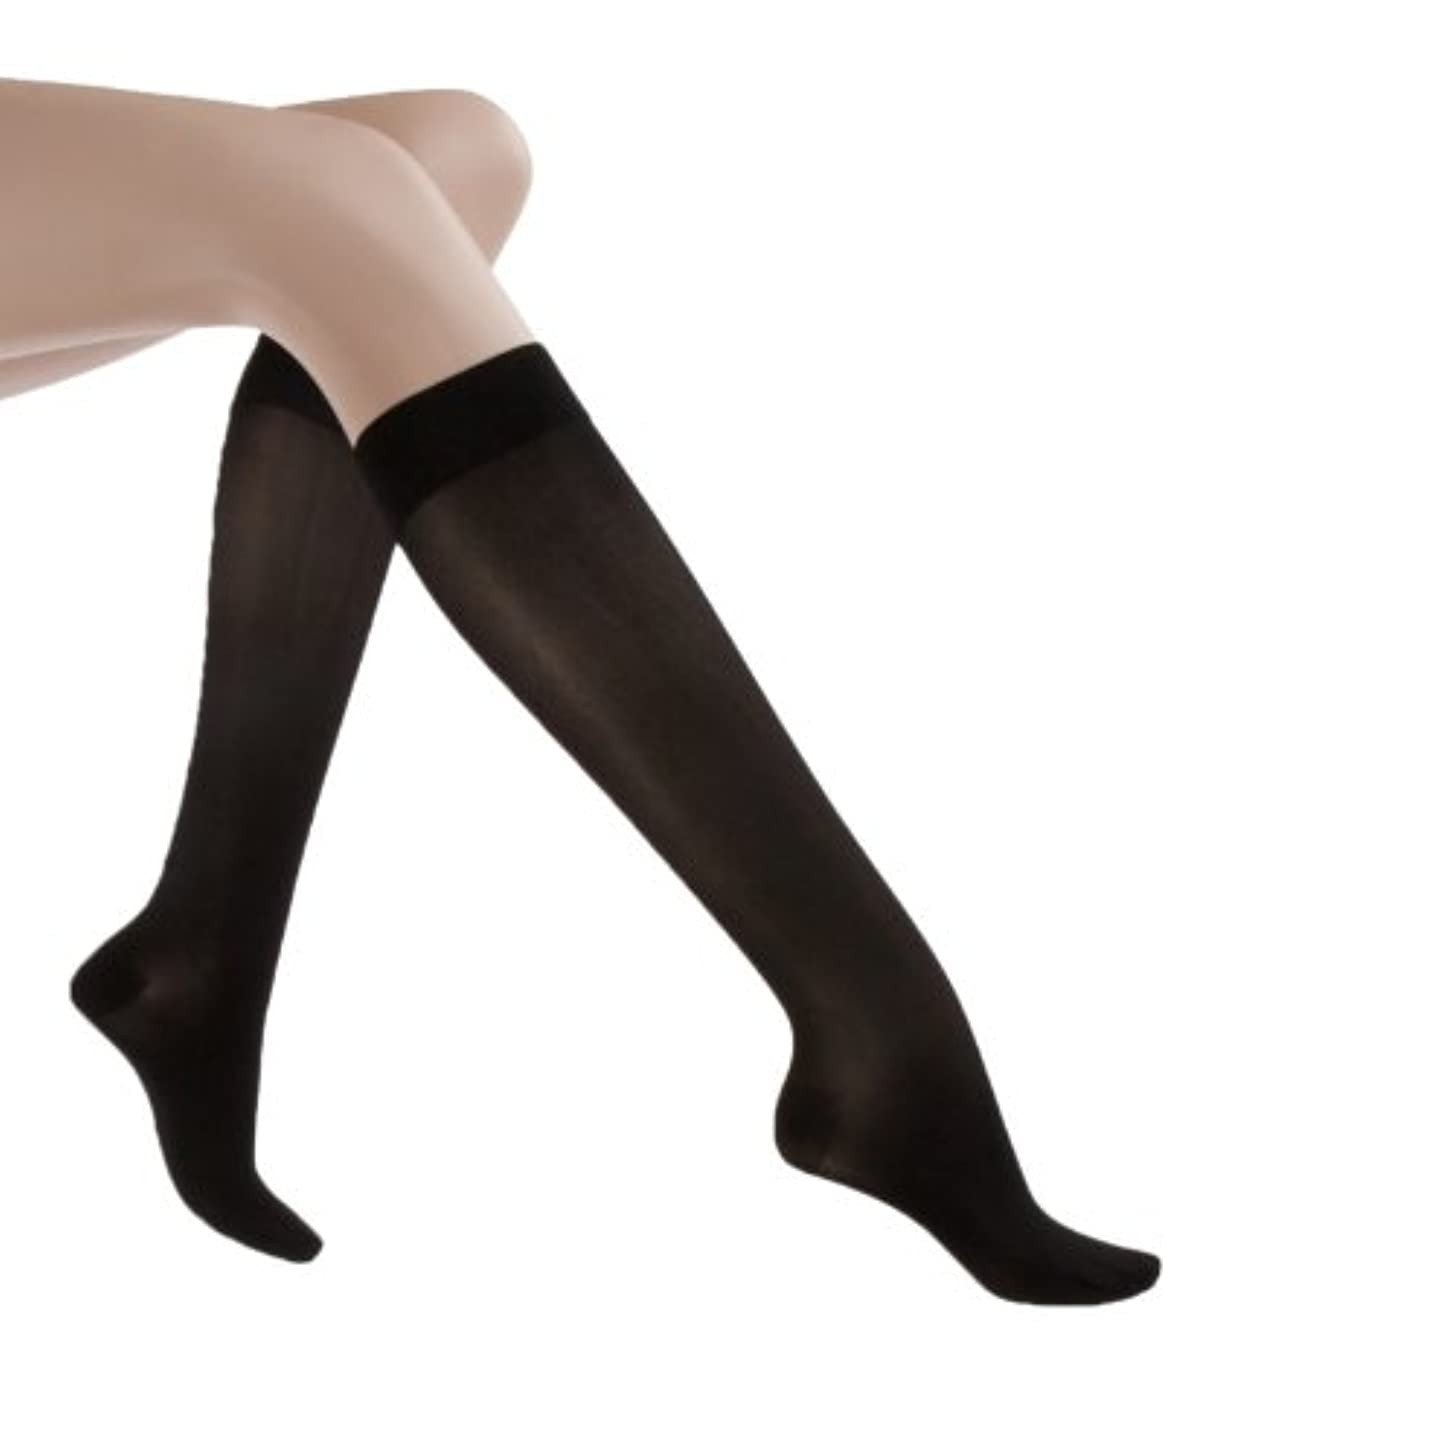 観光に行く分注するまぶしさJobst Women's UltraSheer Moderate Support Knee Highs